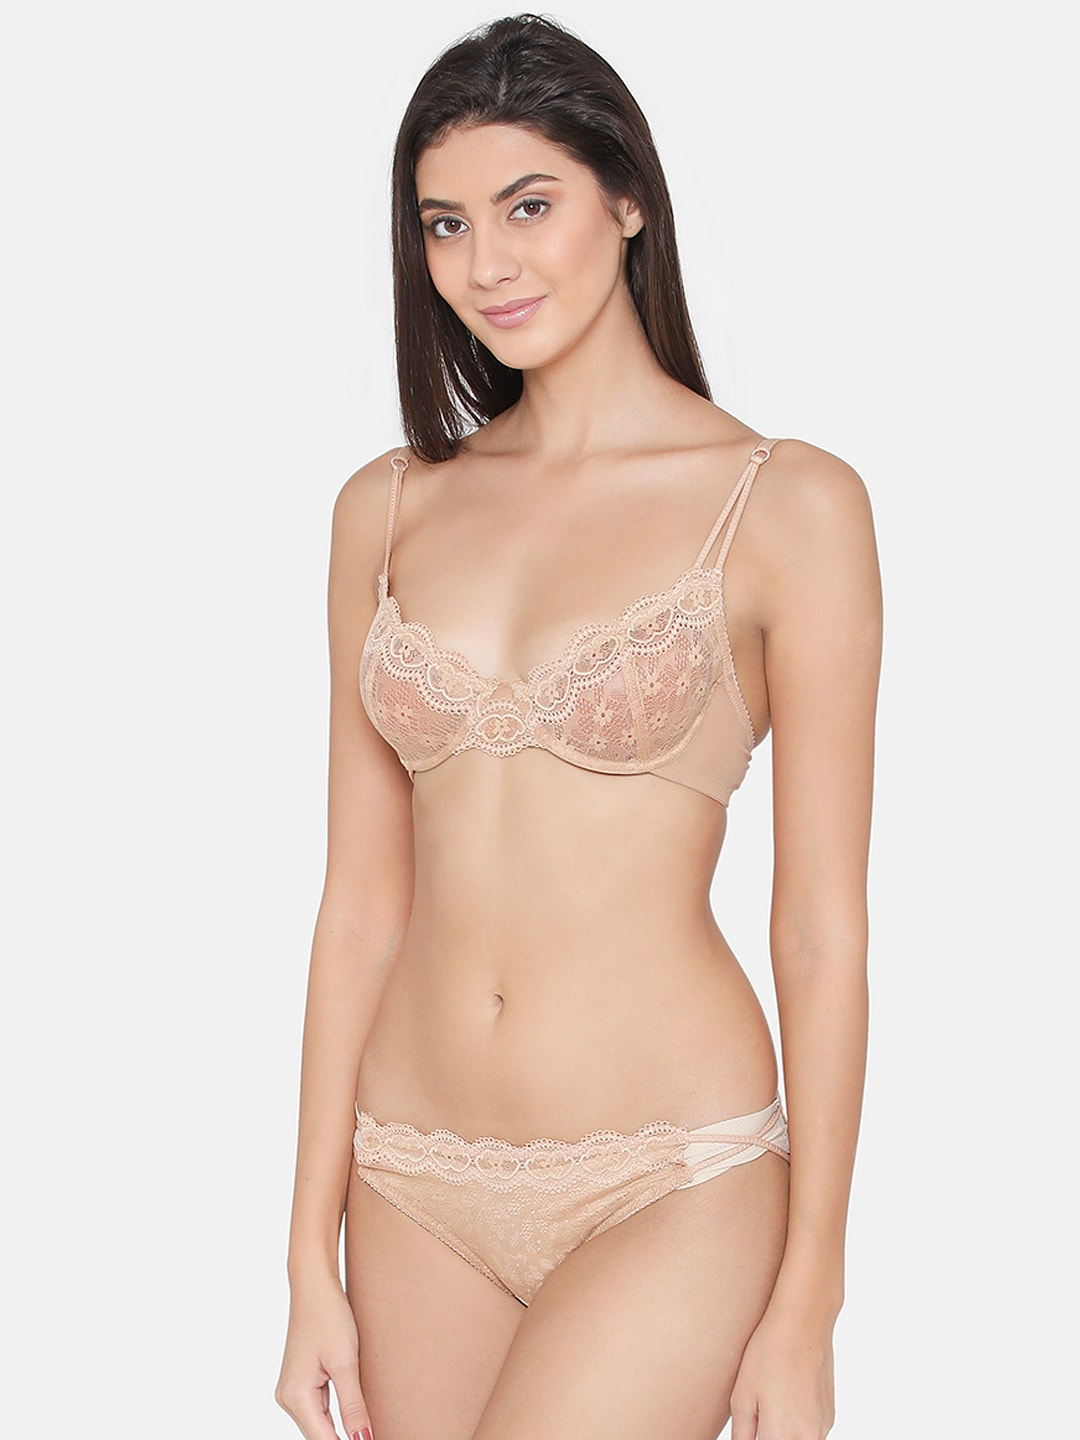 3a3d8e1cae Clovia - Buy Lingerie from Clovia Store Online in India